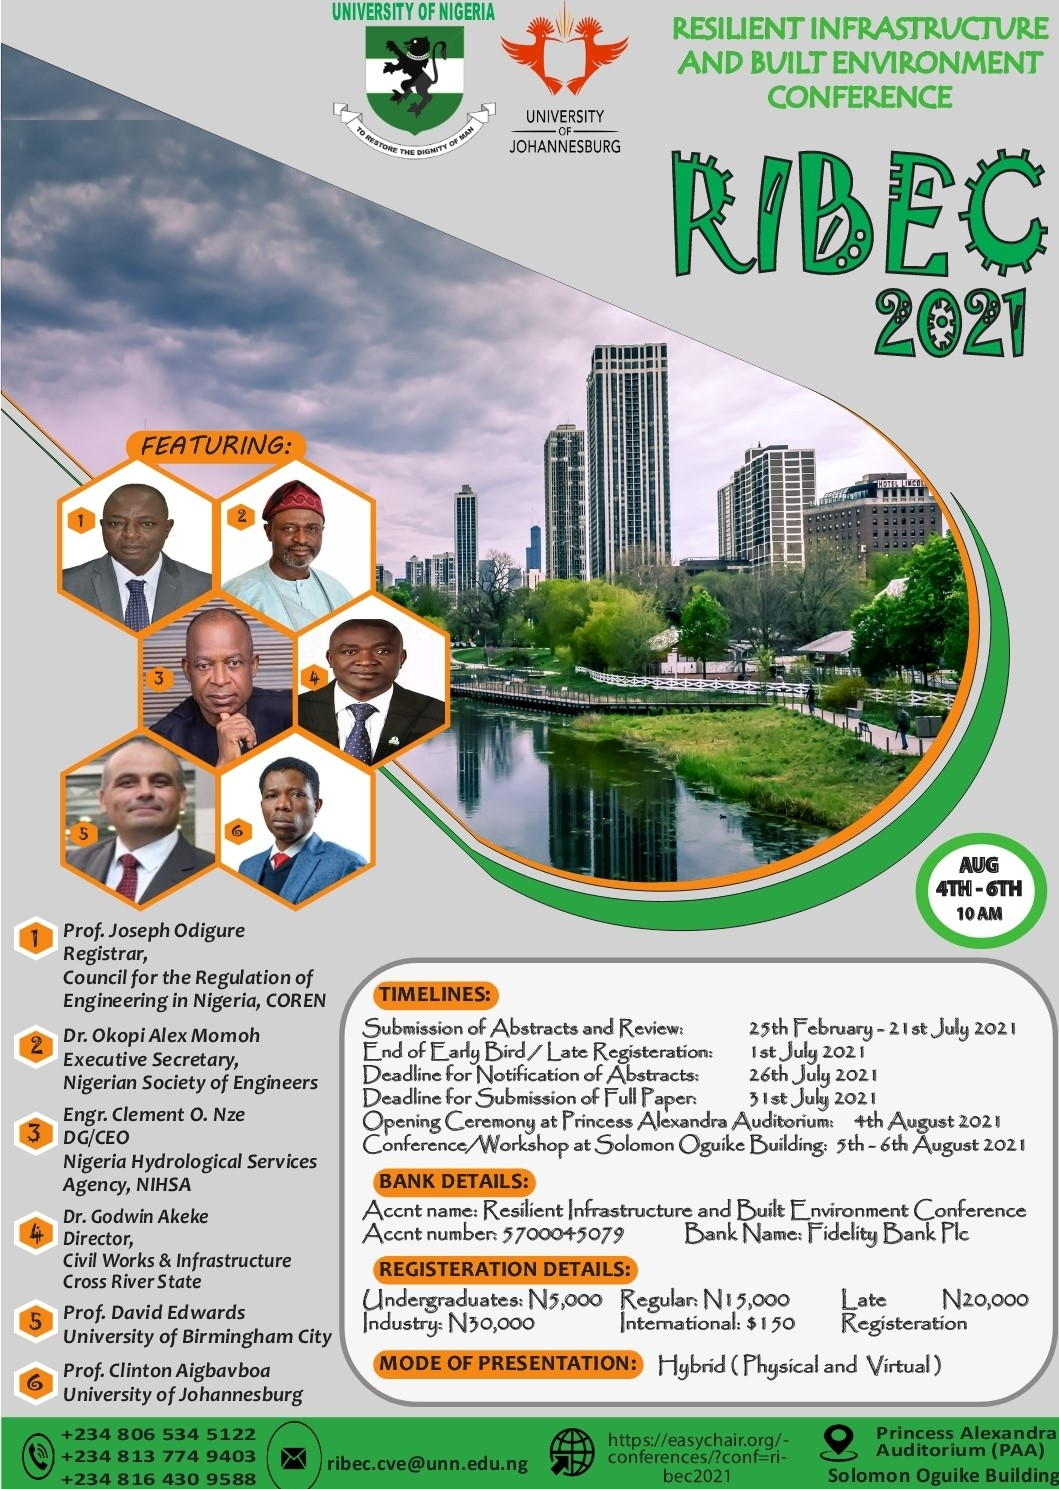 Resilient Infrastructure and Built Environment Conference, RIBEC 2021